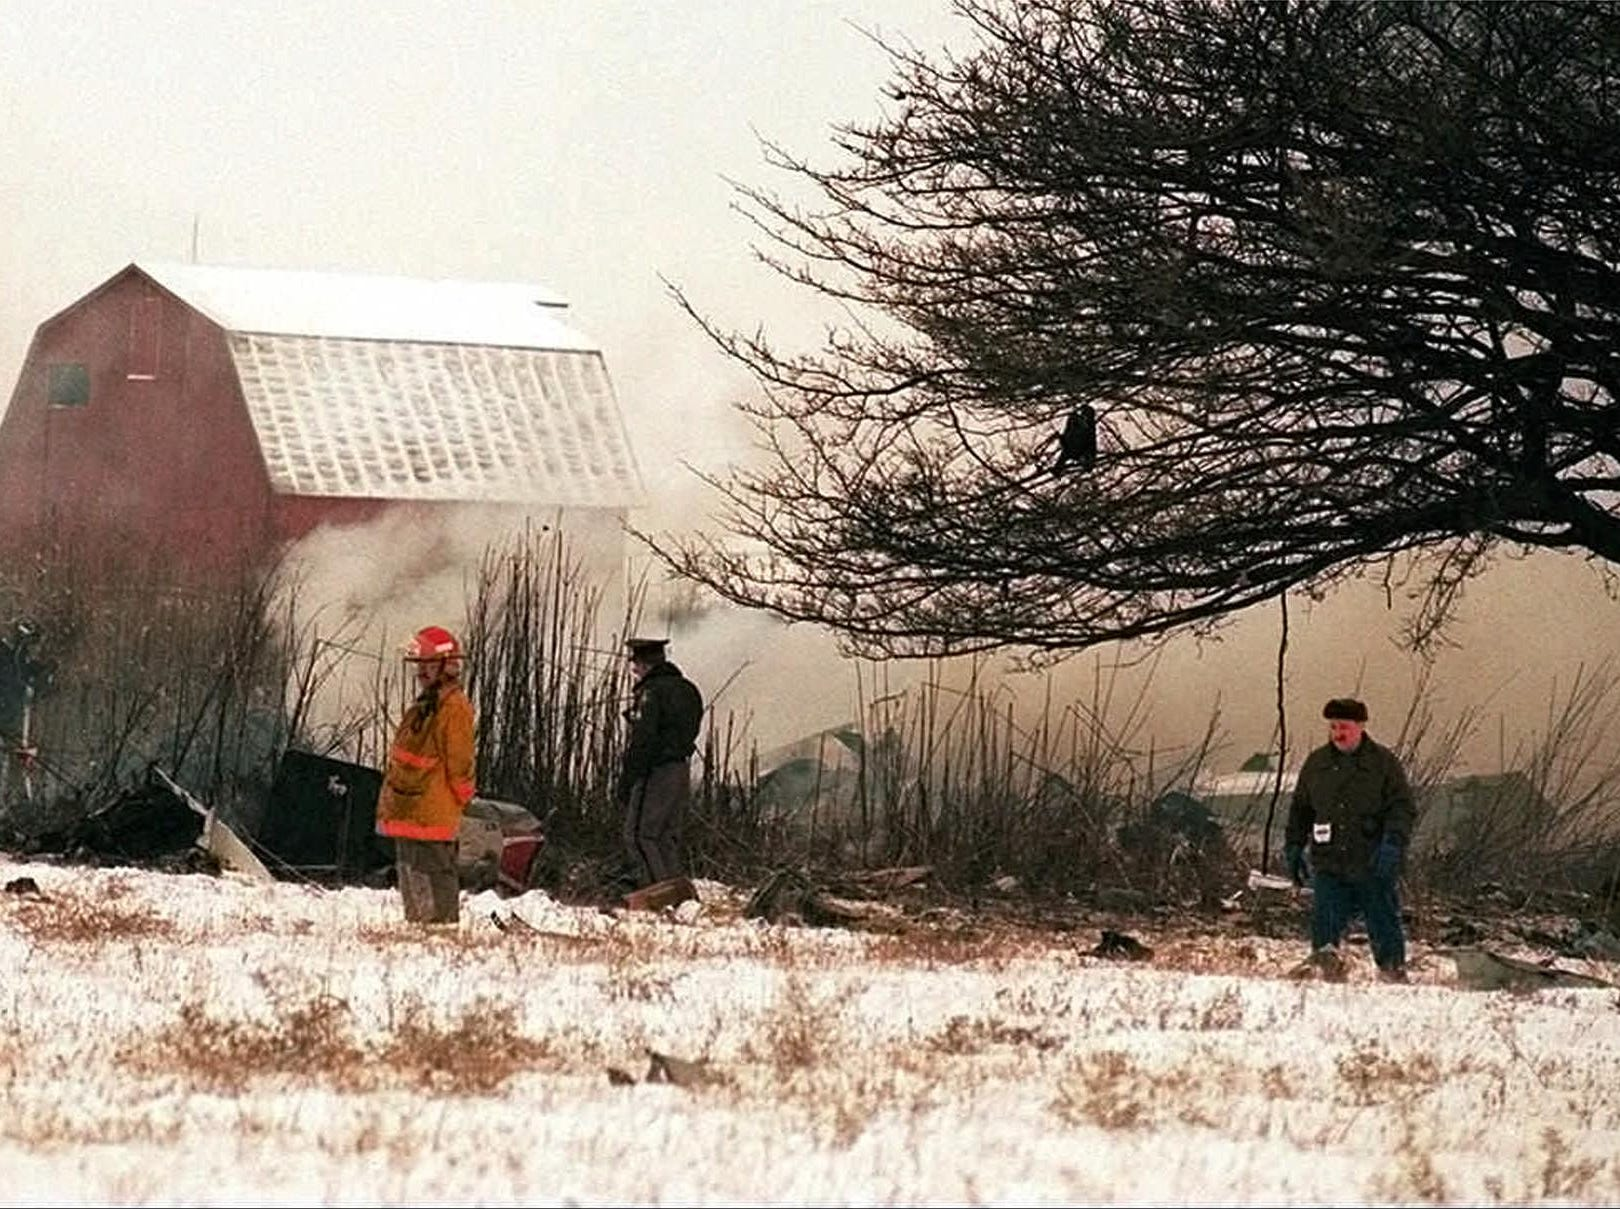 Rescue workers search the wreckage of a Comair Inc. commuter plane that crashed in overcast weather near Monroe, Mich., on Thursday, Jan. 9, 1997, on a flight from Cincinnati to Detroit, killing all 29 aboard. The 30-seat plane splintered into small pieces, leaving a black patch on a clearing in the snow. (AP Photo/The Monroe Evening News, Lynden Steele)